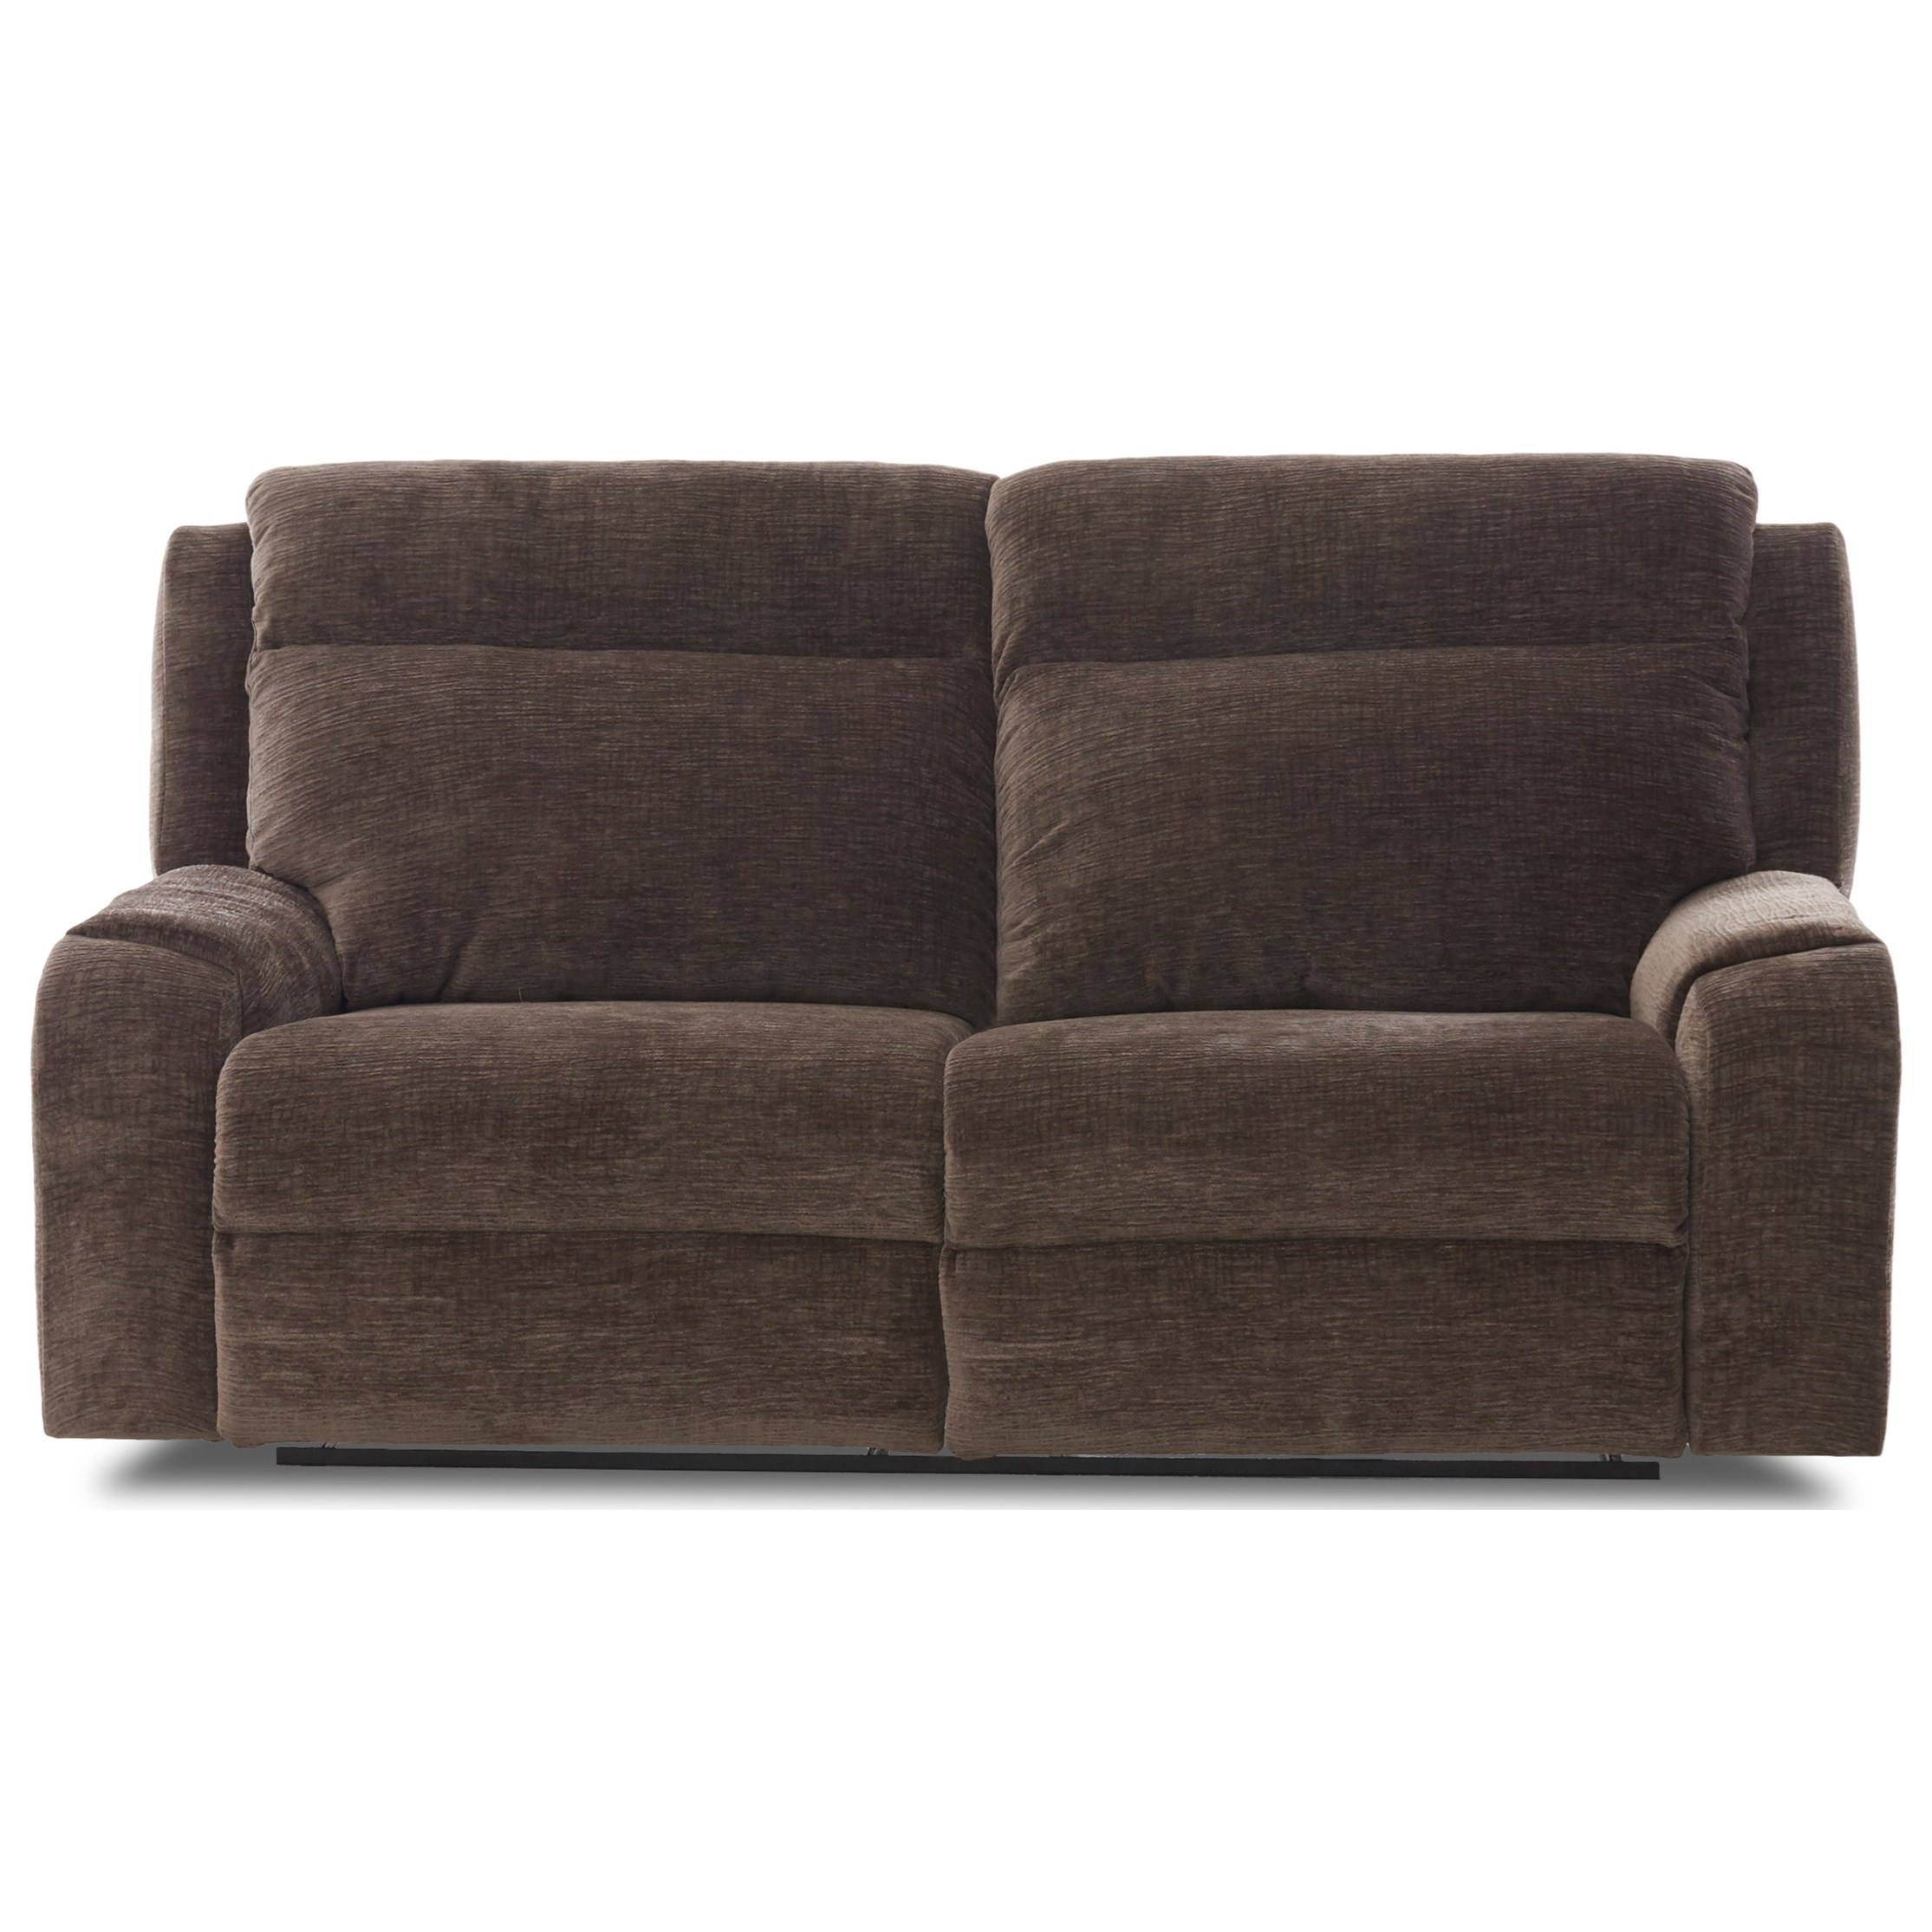 Two Seat Power Reclining Sofa with Wide Seats and USB Charging Ports